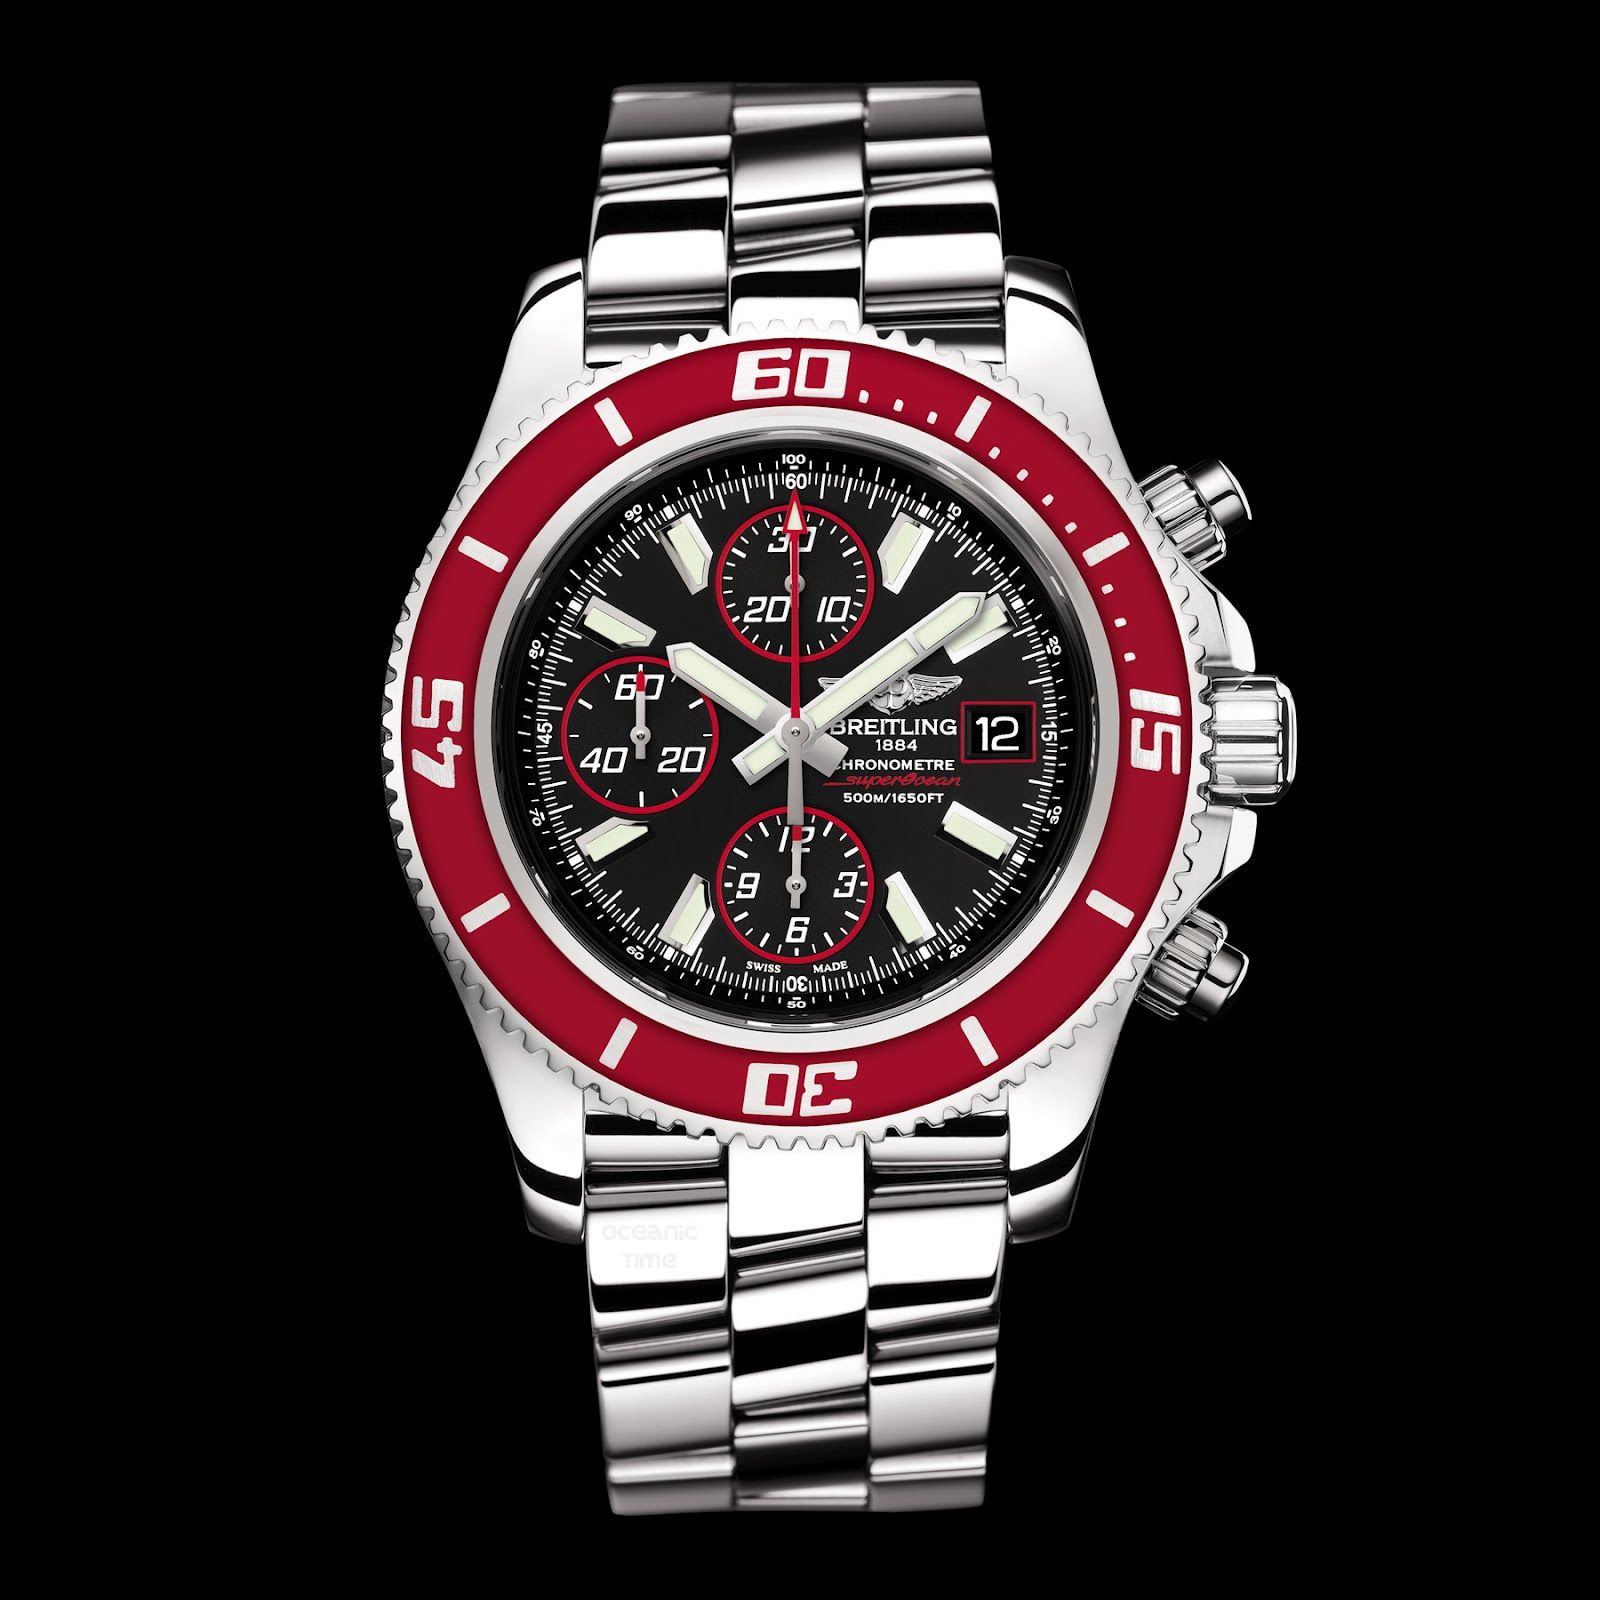 Breitling Superocean Chronograph II Red